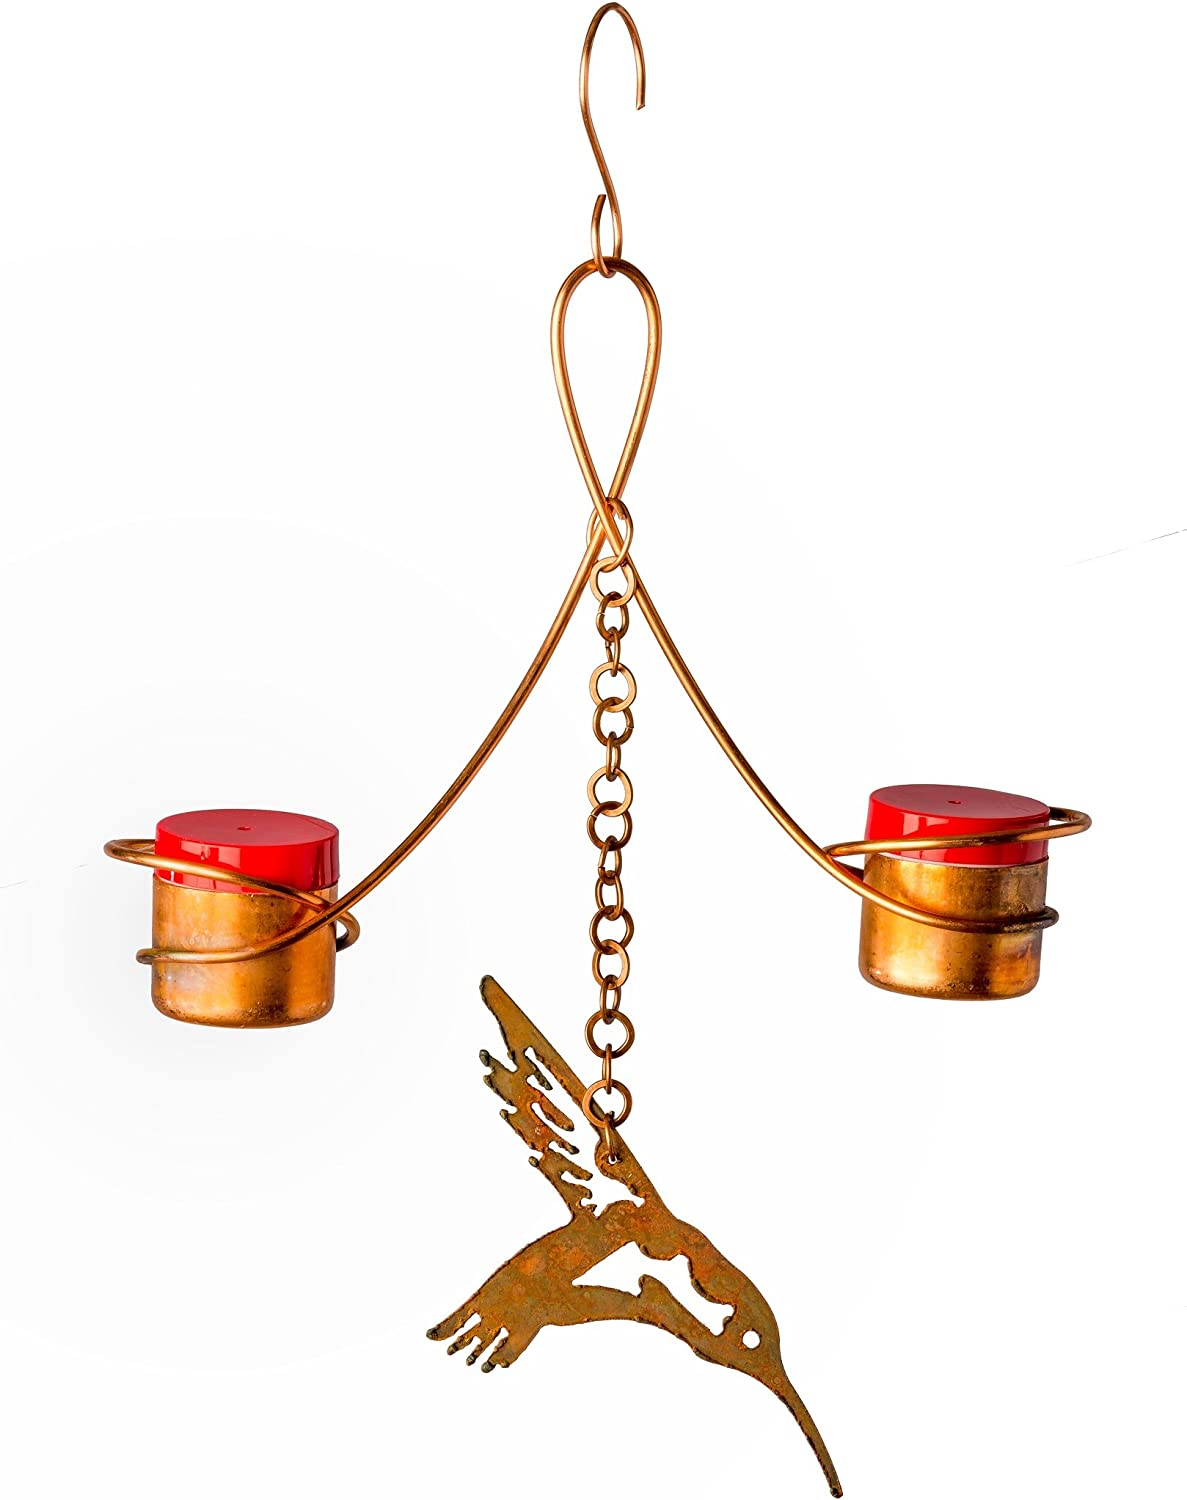 Copper Hummingbird Double Feeder - Drip-Free, Bee and Wasp Proof Design